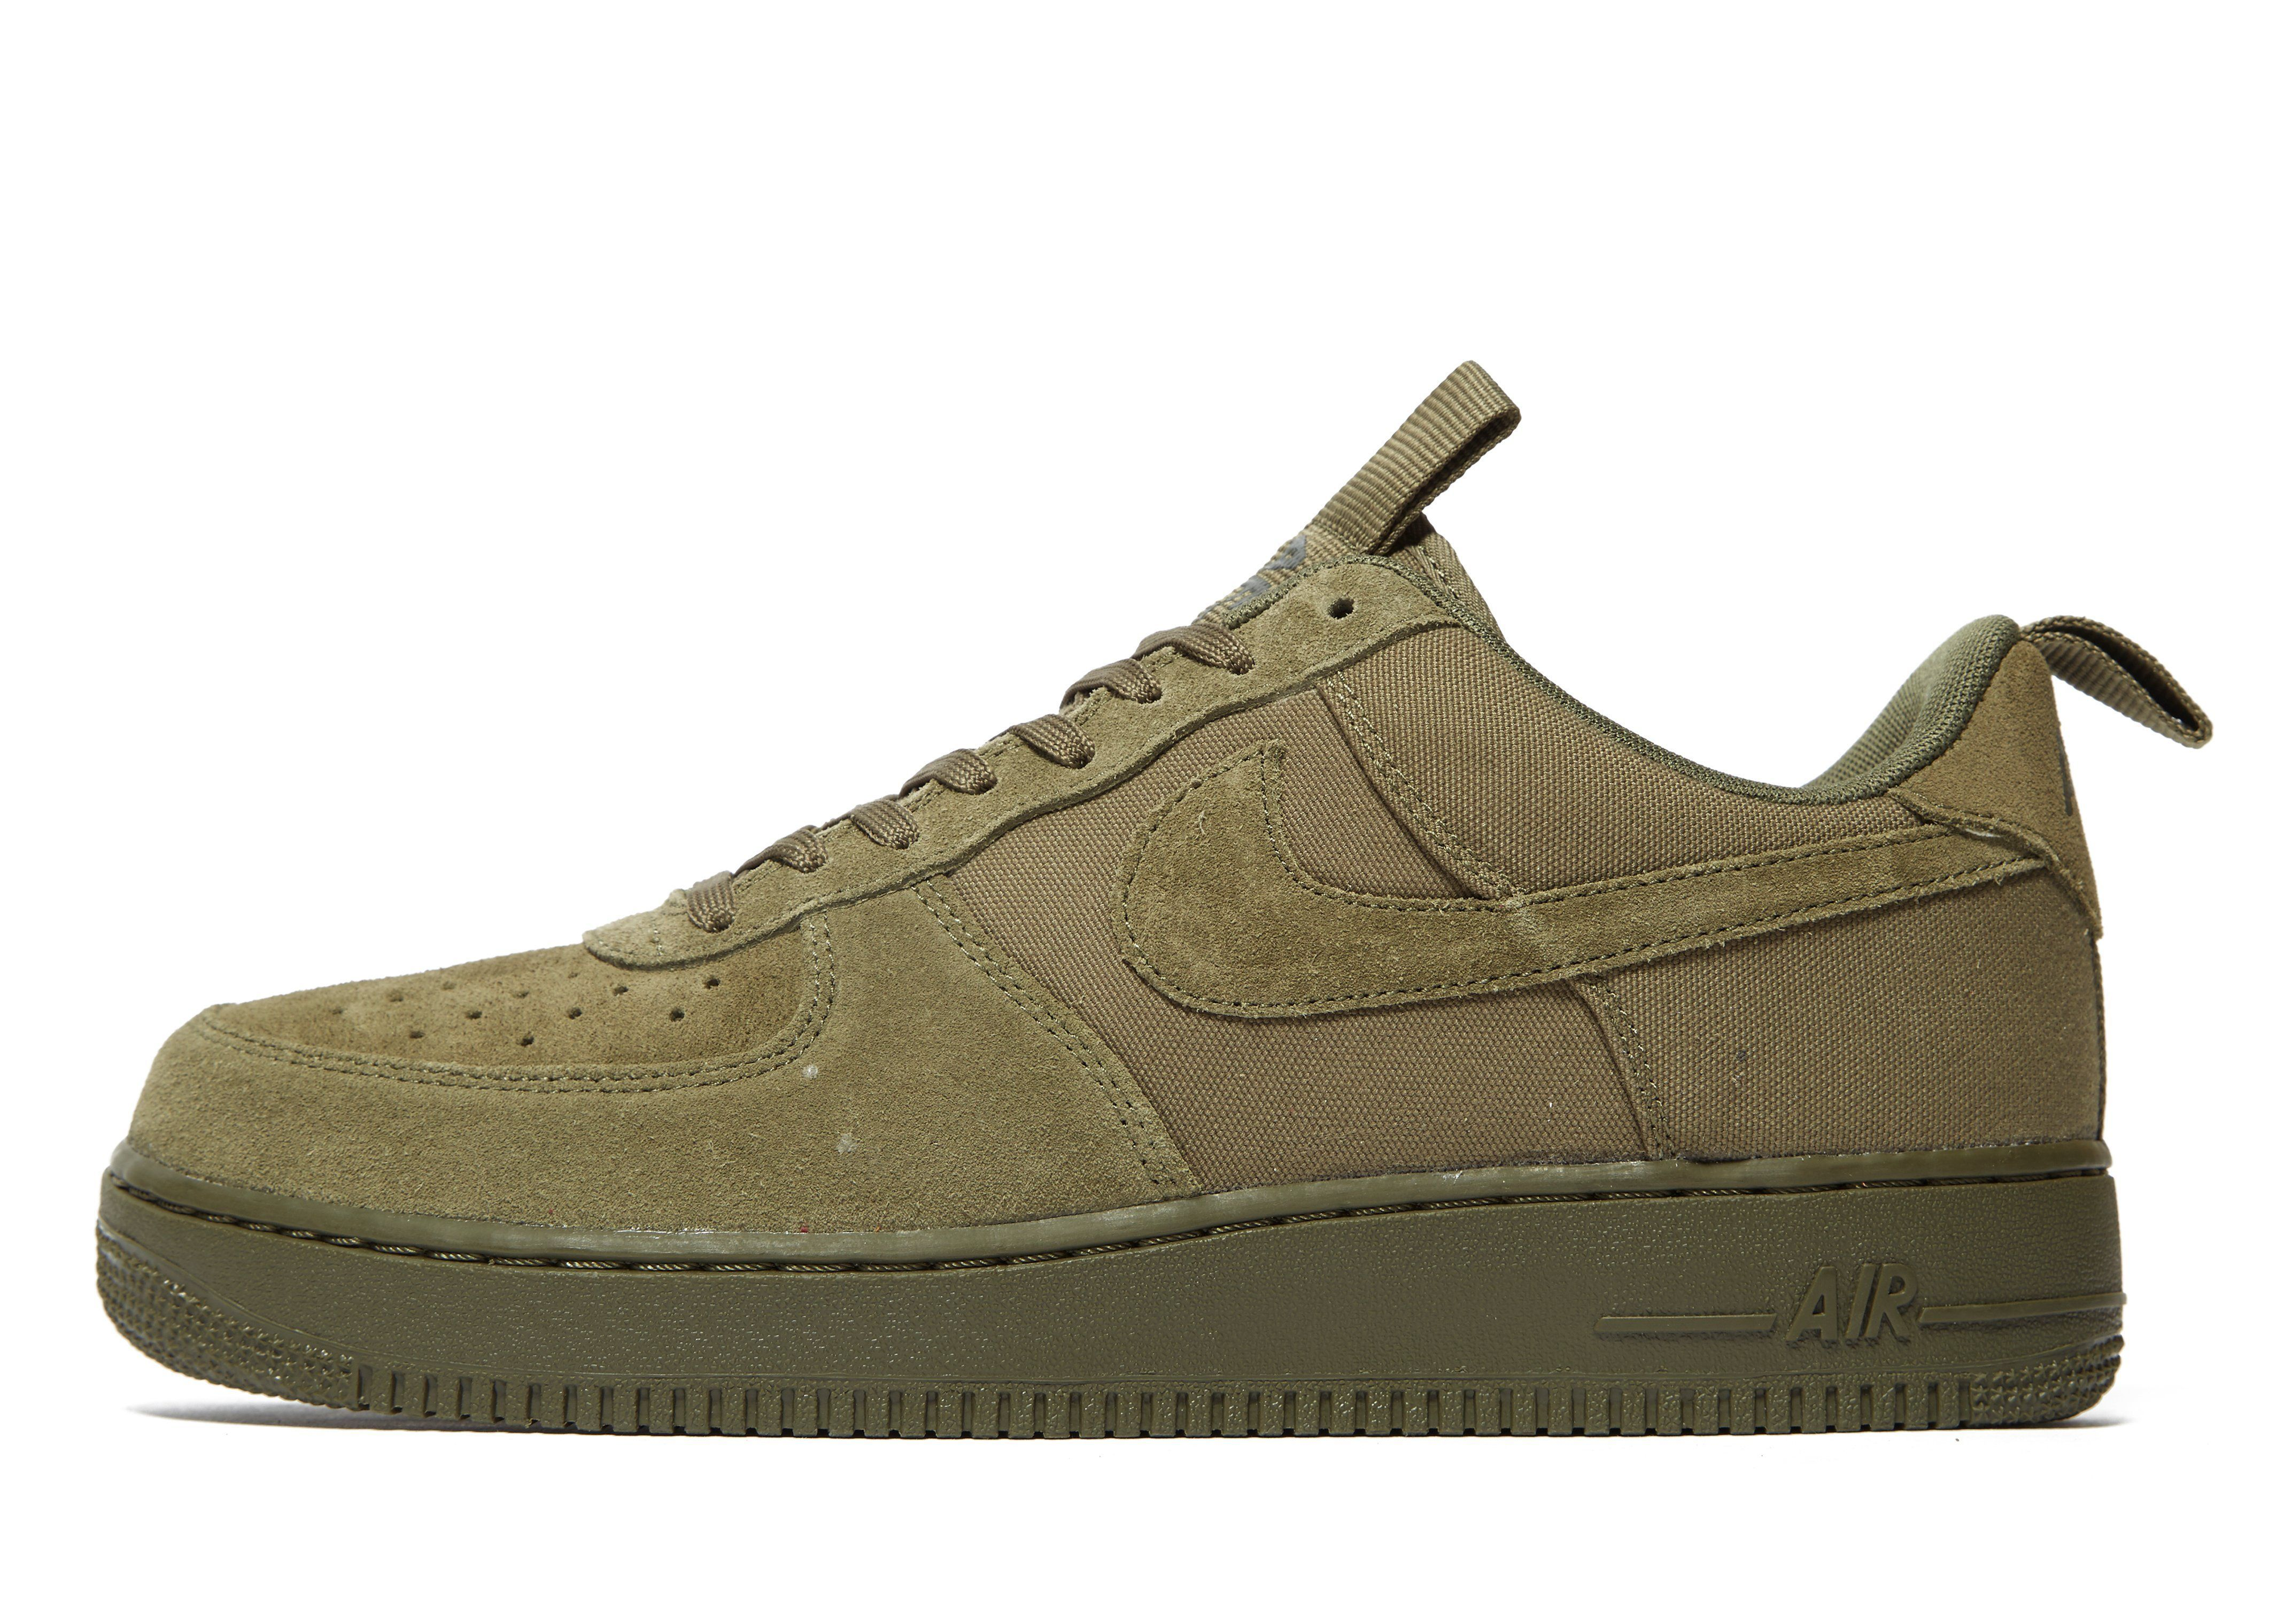 Nike Air Force 1 Canvas Shop online for Nike Air Force 1